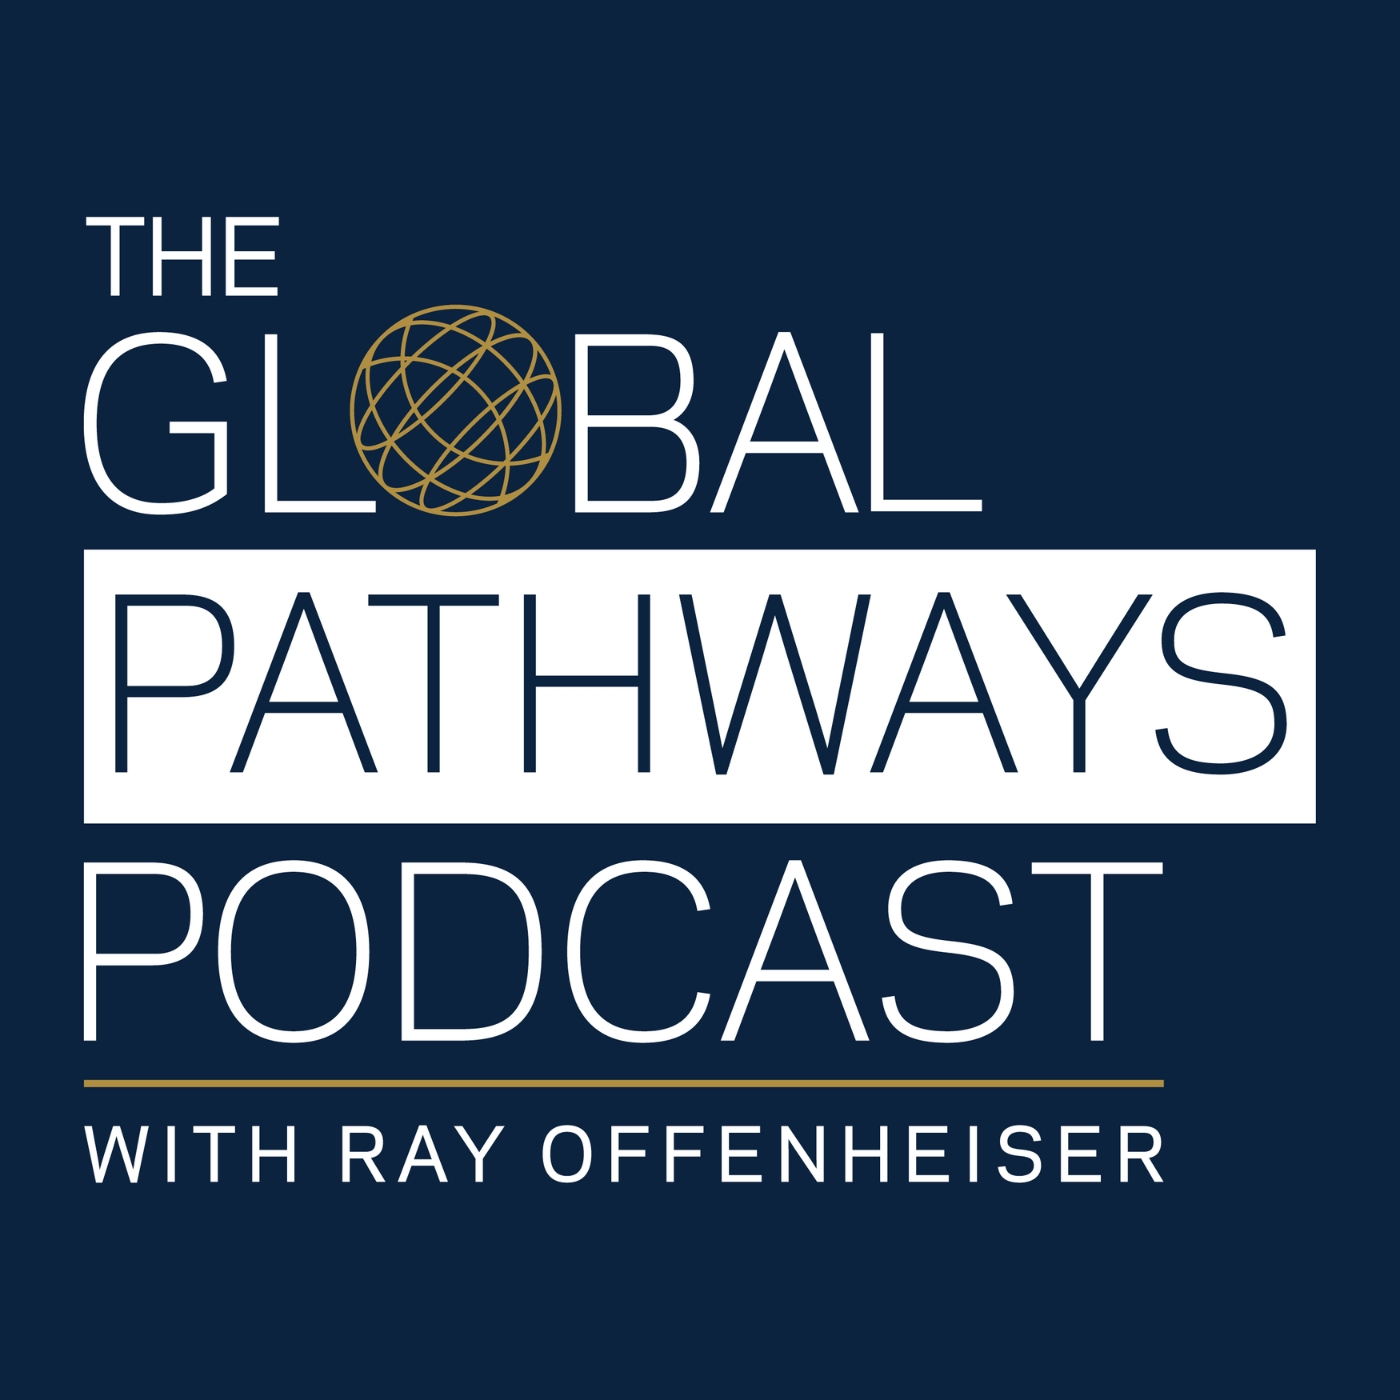 The Global Pathways Podcast with Ray Offenheiser